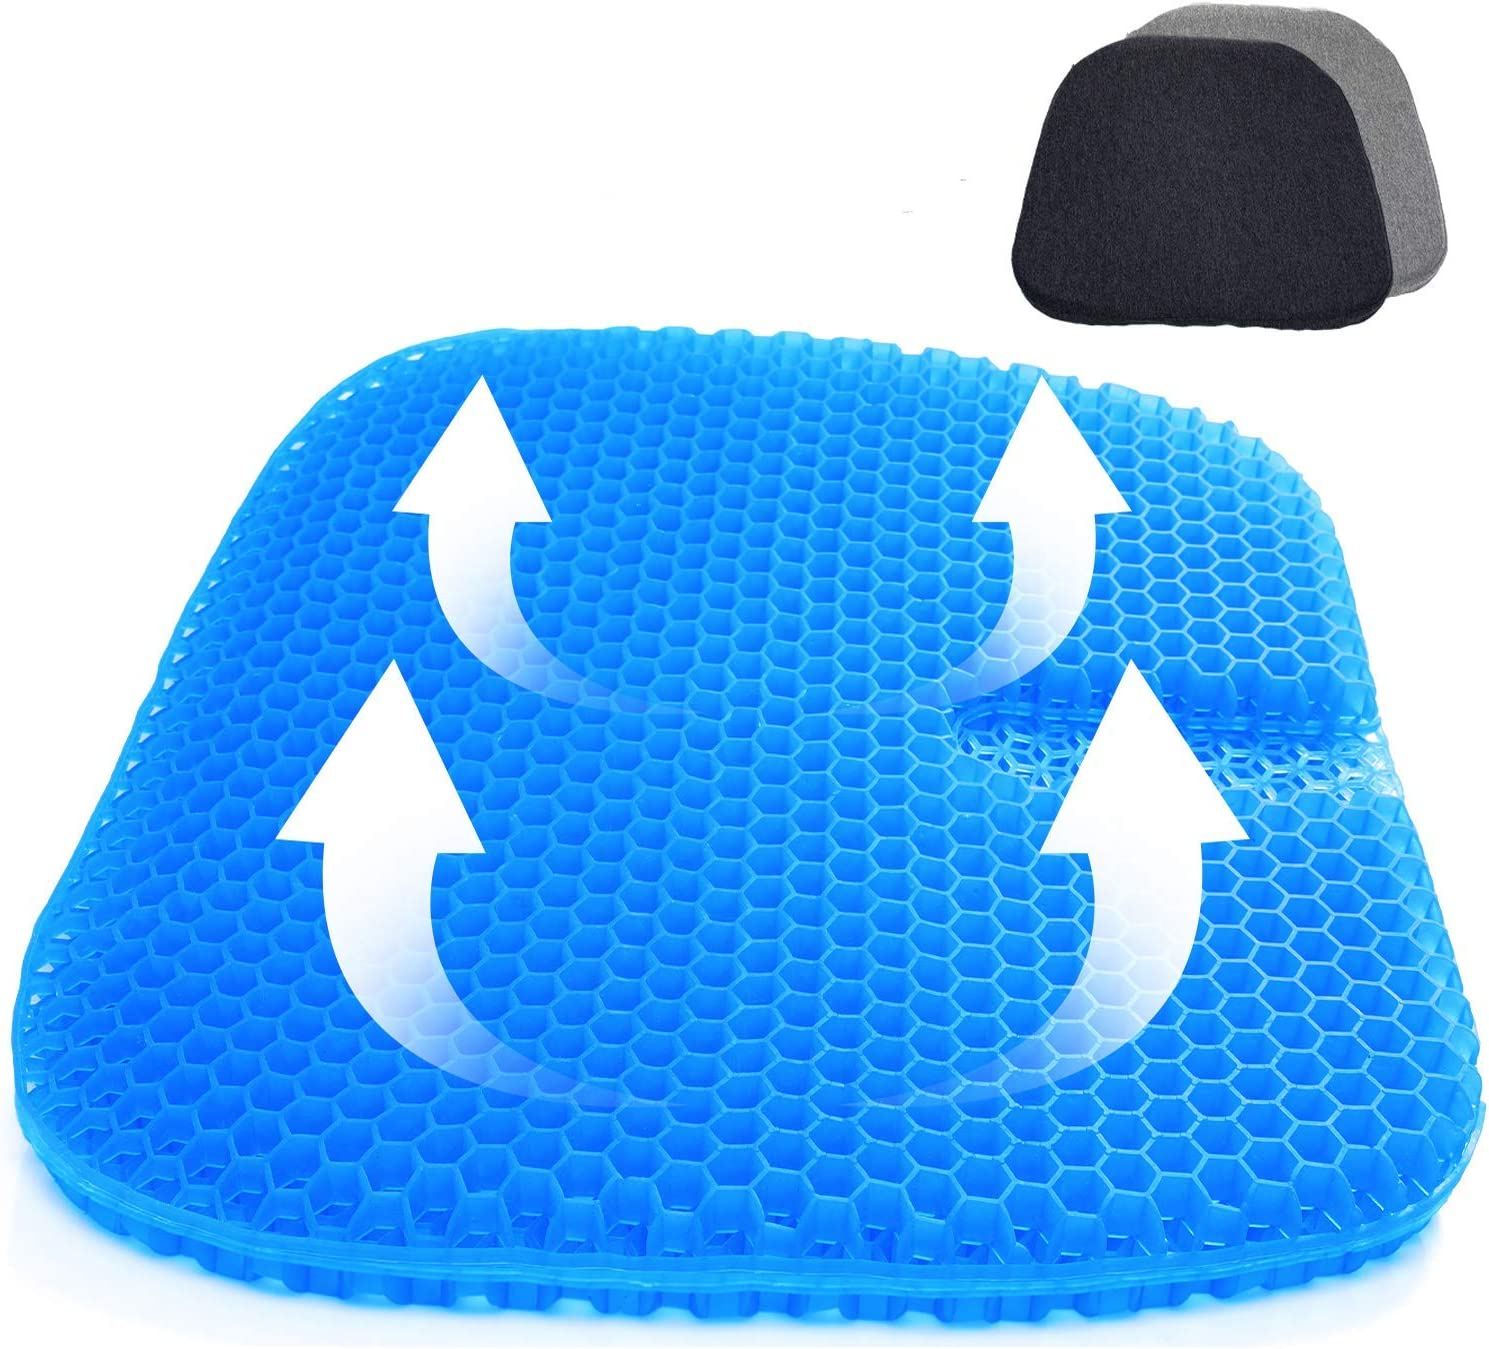 SUPTEMPO Gel Seat Cushion,Gel Office Chair Cushion,Seat Cushion with Non-Slip Cover Breathable Honeycomb Pain Relief Sitting Cushion for Office Chair Car Wheelchair (Blue)